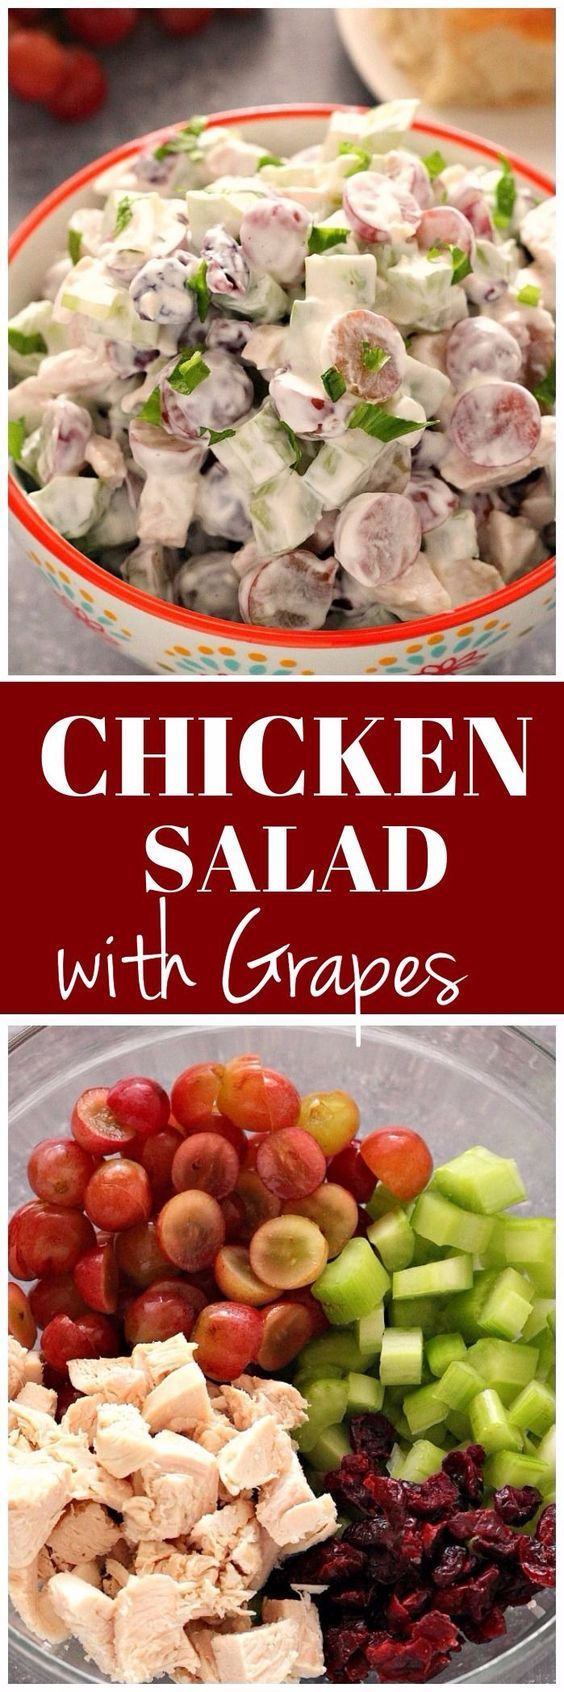 Easy Chicken Salad With Grapes Celery And Cranberries Tossed With Light Sour Cream Dressing Perfe Easy Chicken Salad Chicken Salad With Grapes Grape Recipes